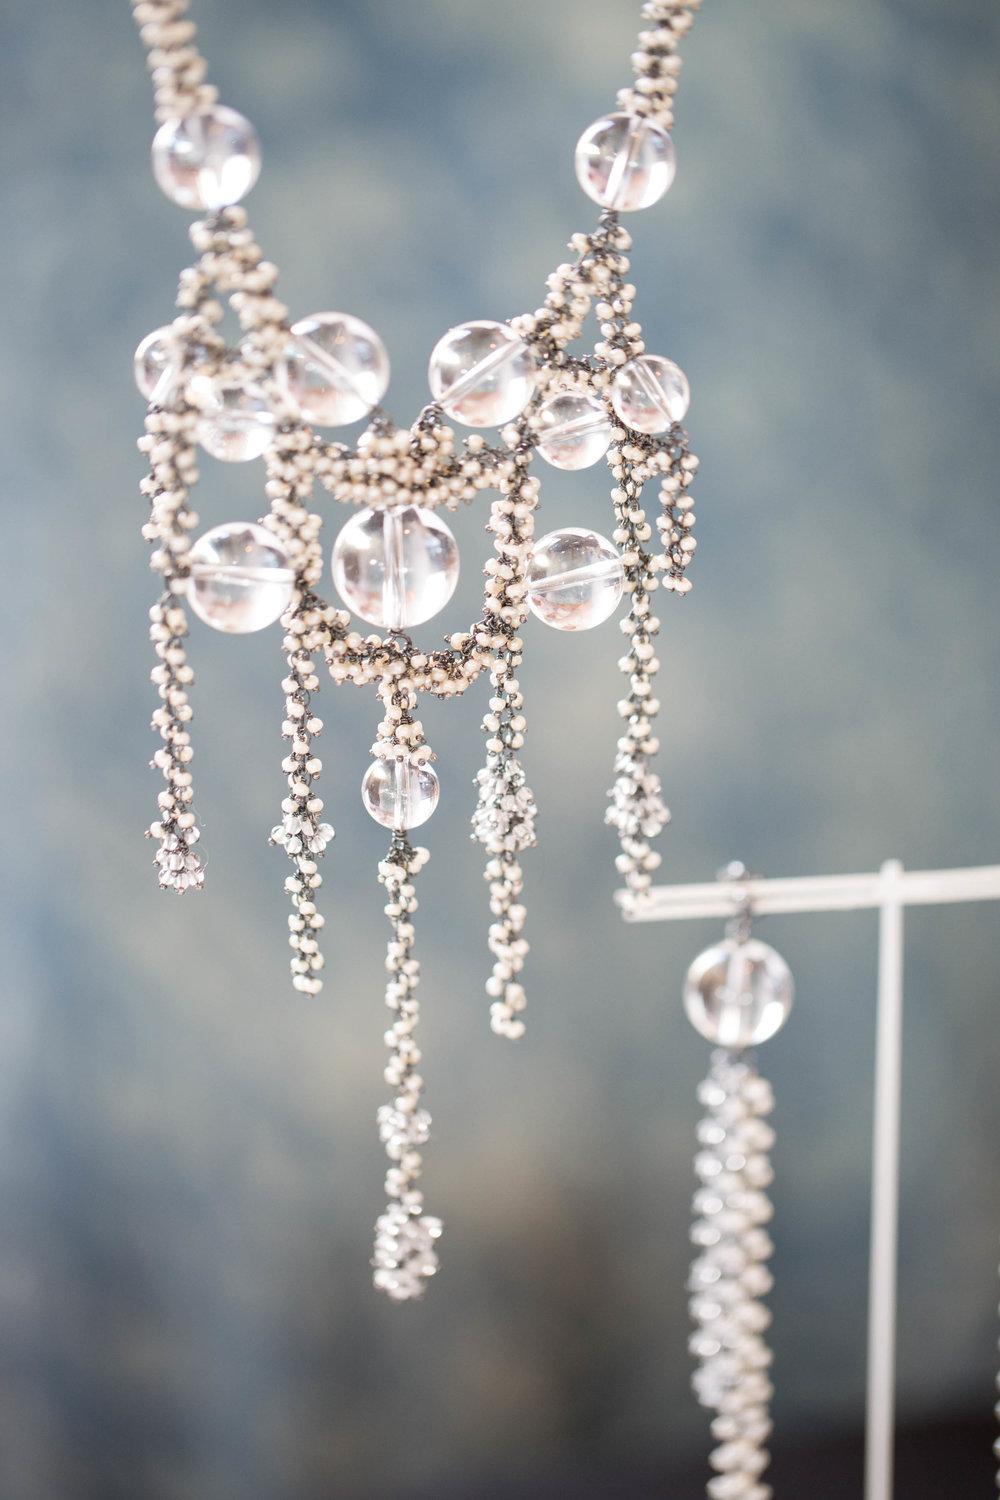 Michelle Pajak-Reynolds Undina Collection Venus necklace handcrafted in pearls, 174.85 carats (total weight) rock crystal quartz and oxidized recycled sterling silver.  Photo credit: Julie Stanley/JuleImages